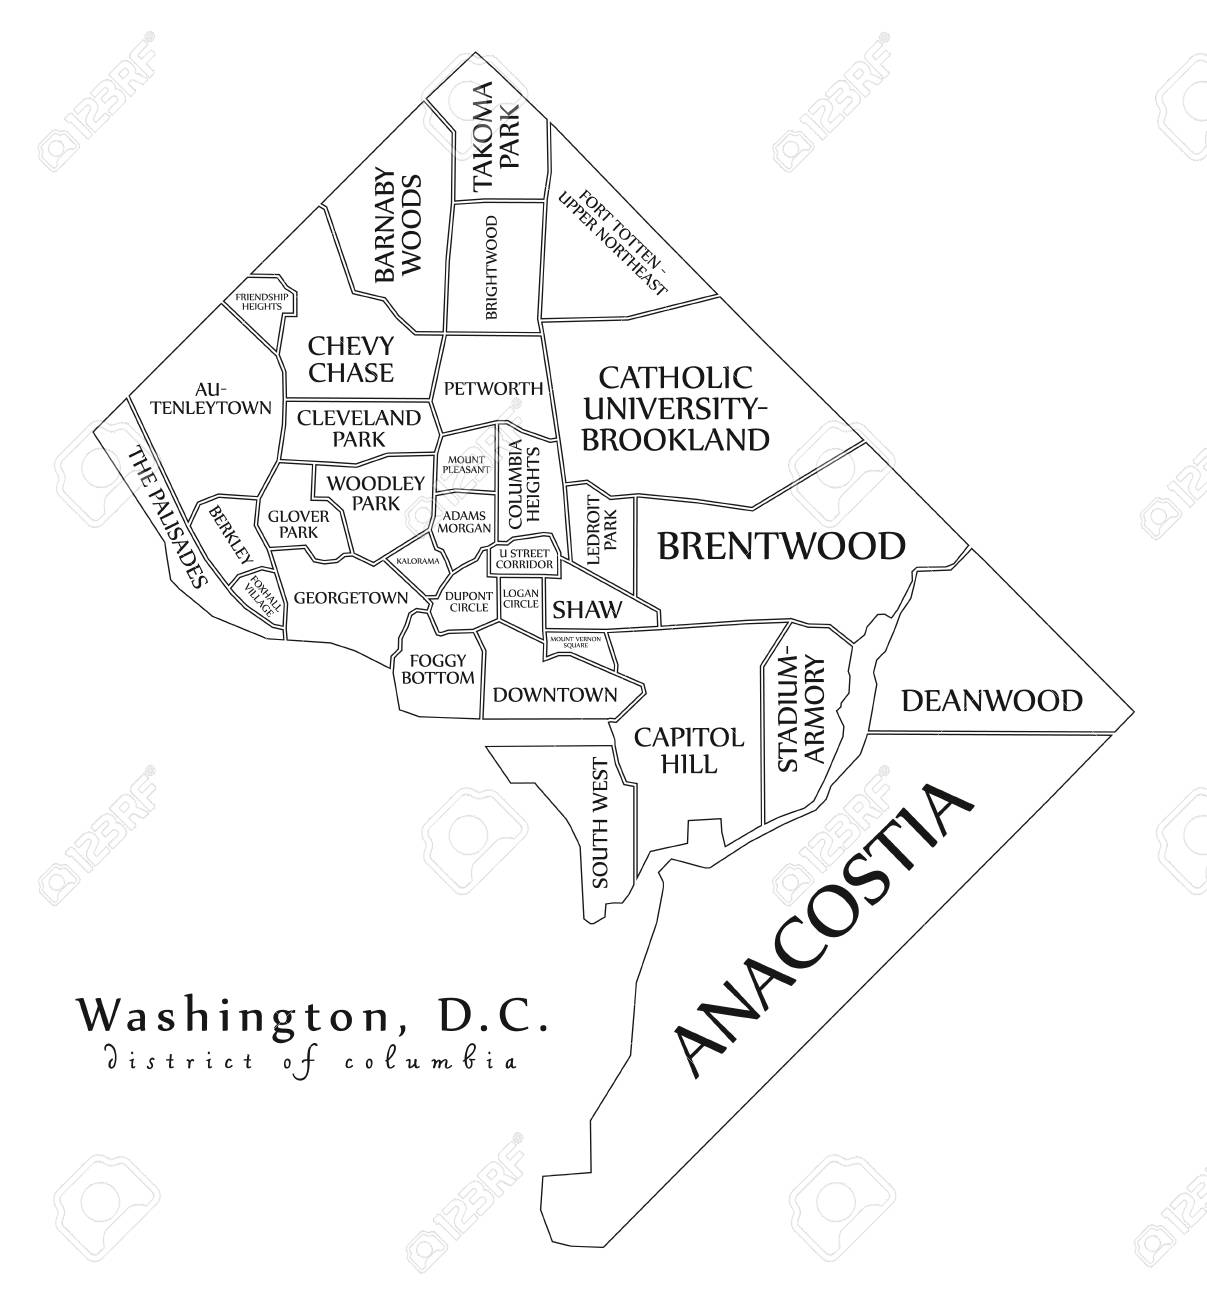 Buroughs Of Dc Map on city map dc, map with metro stops dc, civil war map washington dc, wmata map washington dc, county map washington dc, usa map washington dc, google maps dc, zip code map nw dc, simple map washington dc, subway map for washington dc, map showing washington, printable map washington dc, map ofwashington dc, star map washington dc, street map with metro stations washington dc, us map showing dc, neighborhood and ward map dc, print map washington dc, interactive metro map washington dc, united states map with dc,